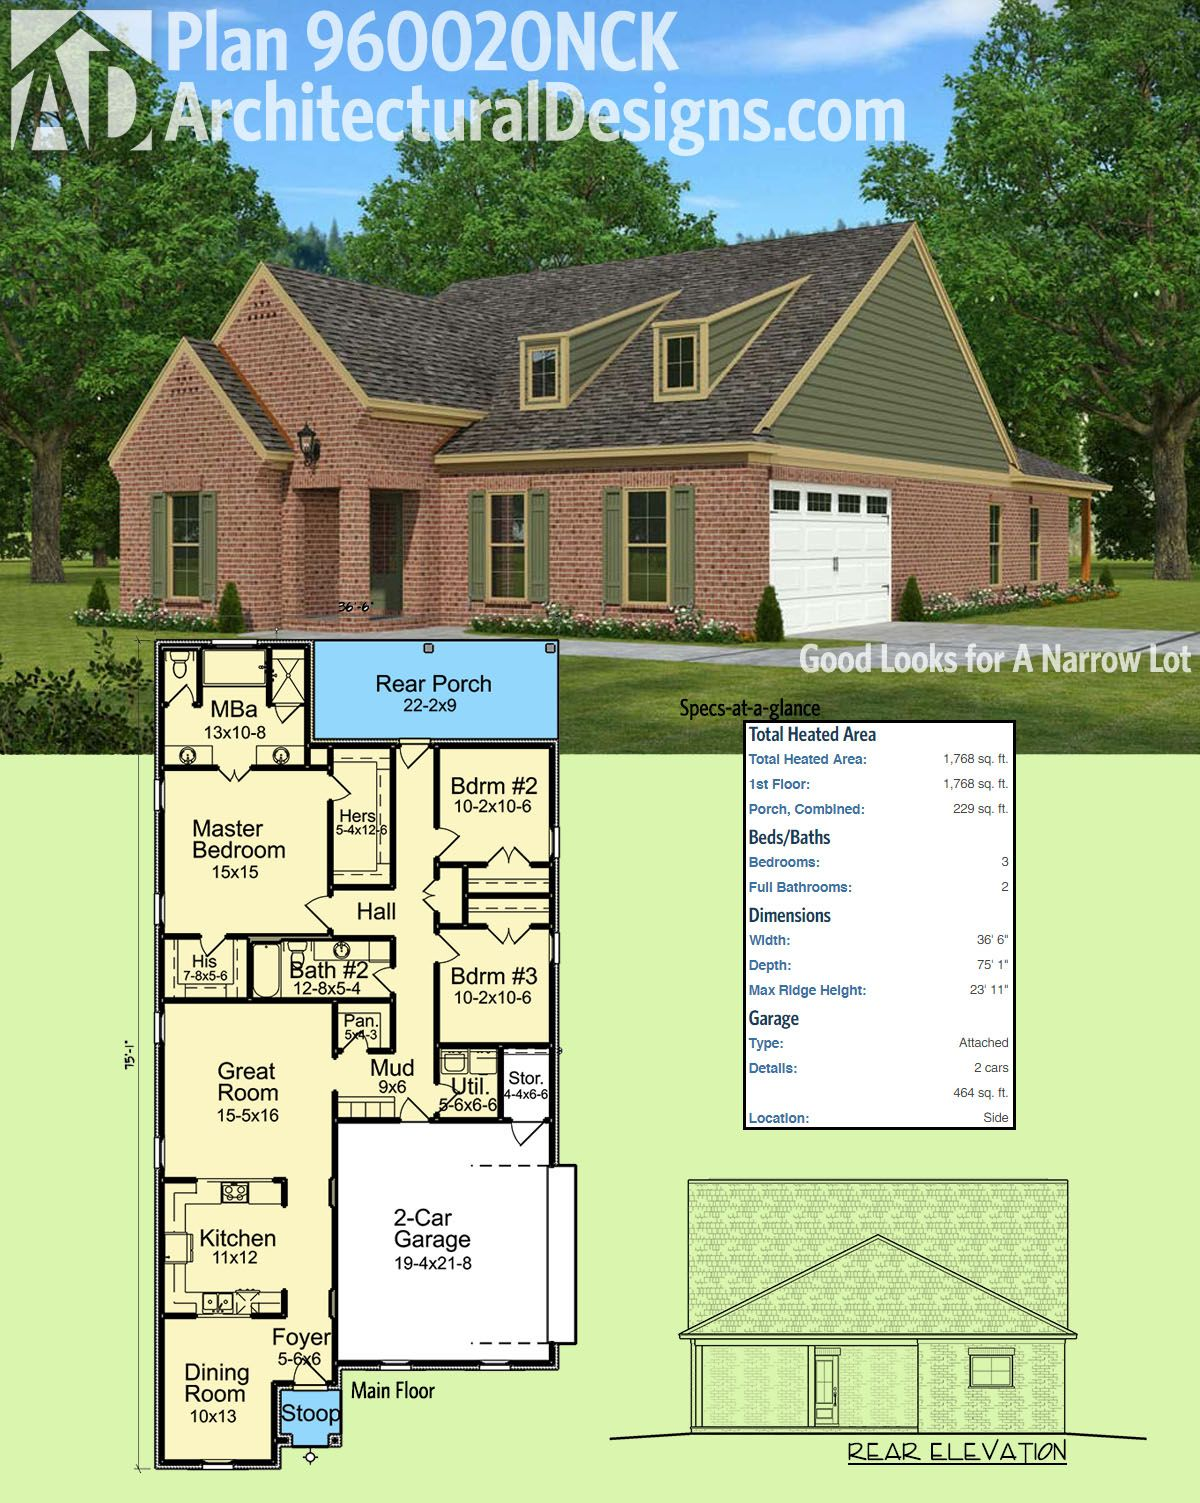 Architectural Designs House Plan 960020NCK Is Great For Your Narrow Lot.  Only 36u00276